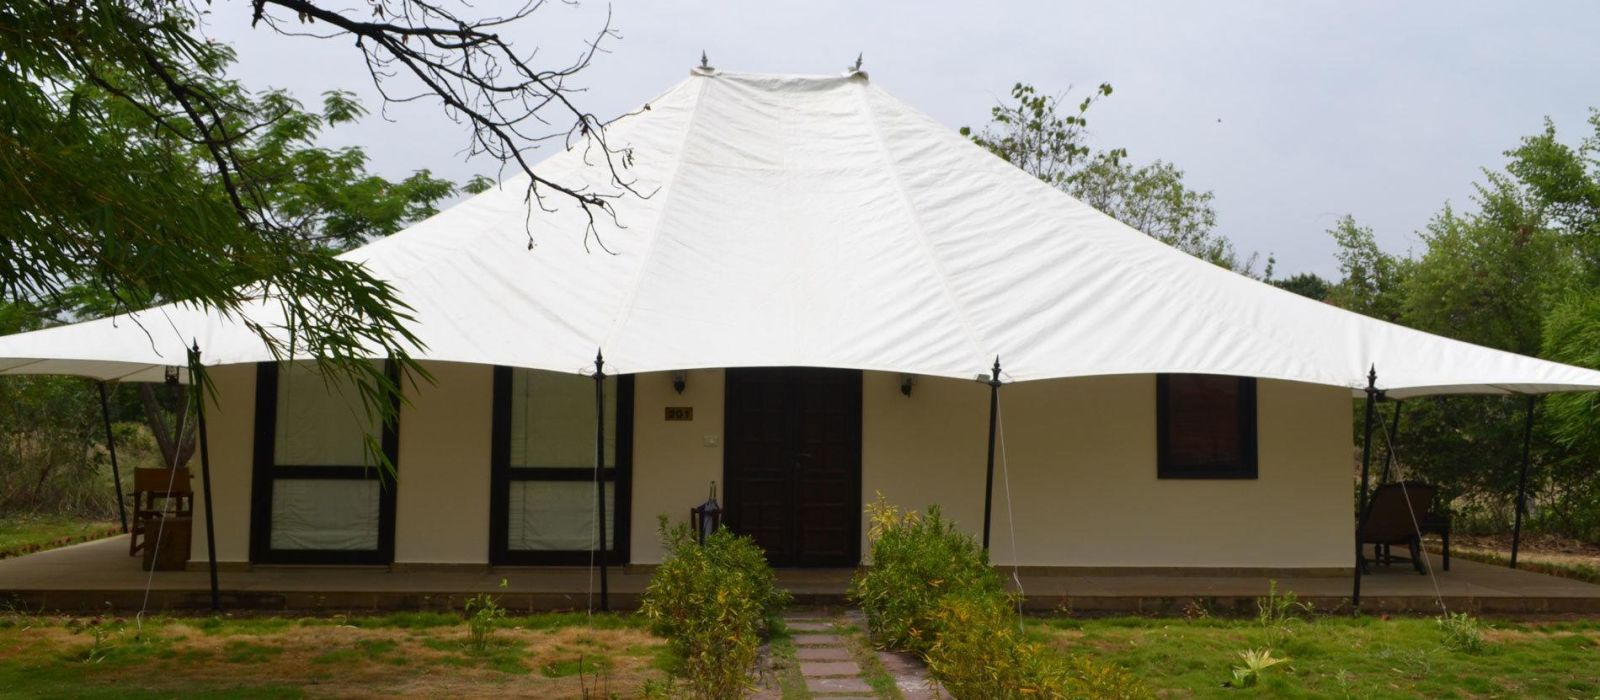 Hotel Tuli Tiger Corridor Central & West India